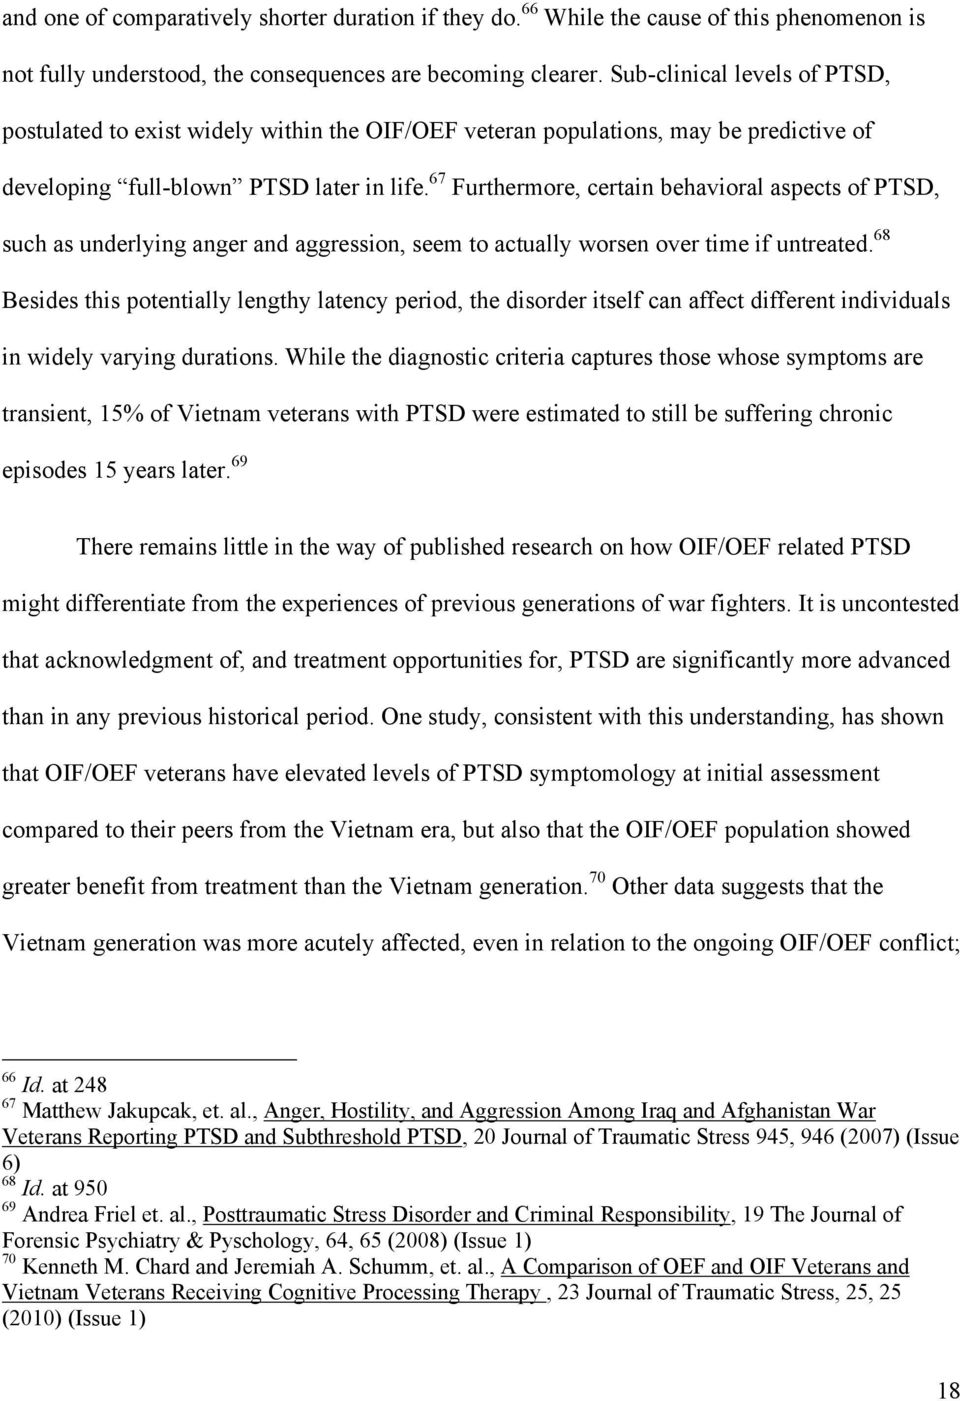 67 Furthermore, certain behavioral aspects of PTSD, such as underlying anger and aggression, seem to actually worsen over time if untreated.